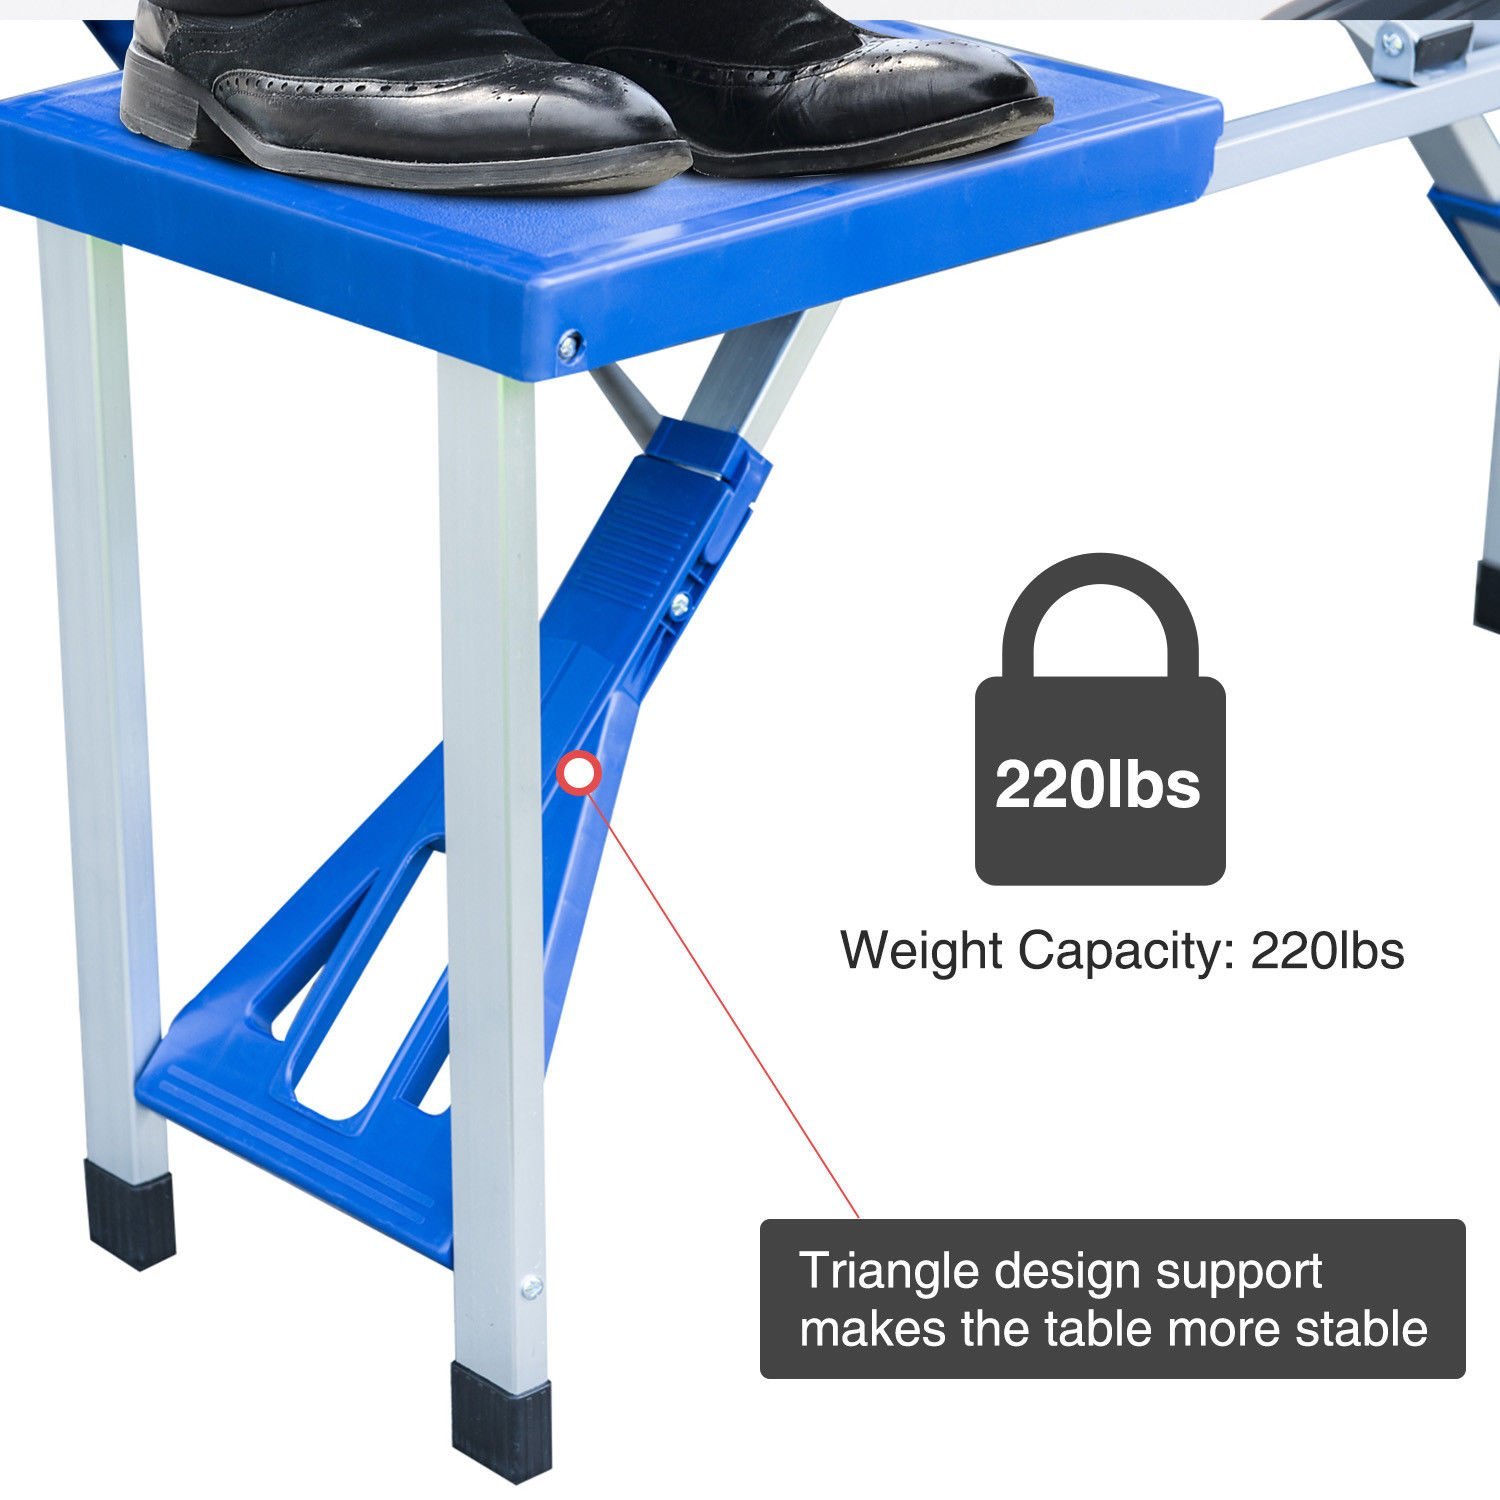 Ar Portable Folding Plastic Camping Picnic Table 4 Seats Outdoor Garden W/Case Blue by Ar (Image #4)